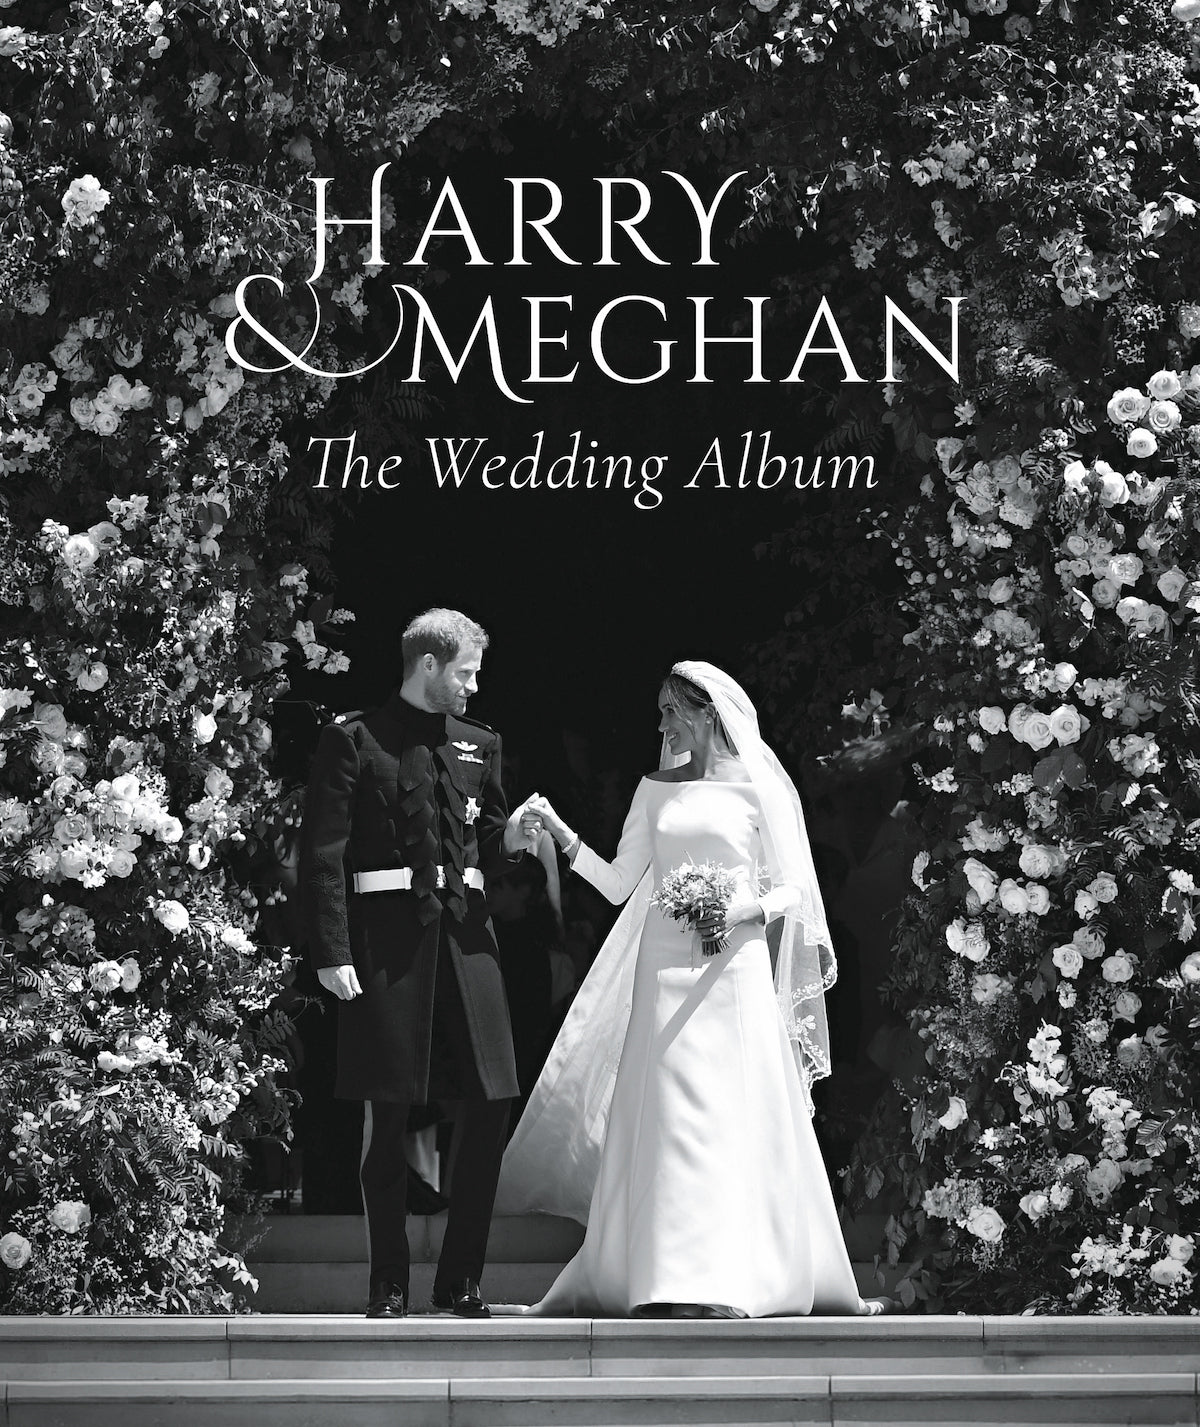 Harry & Meghan: The Wedding Album